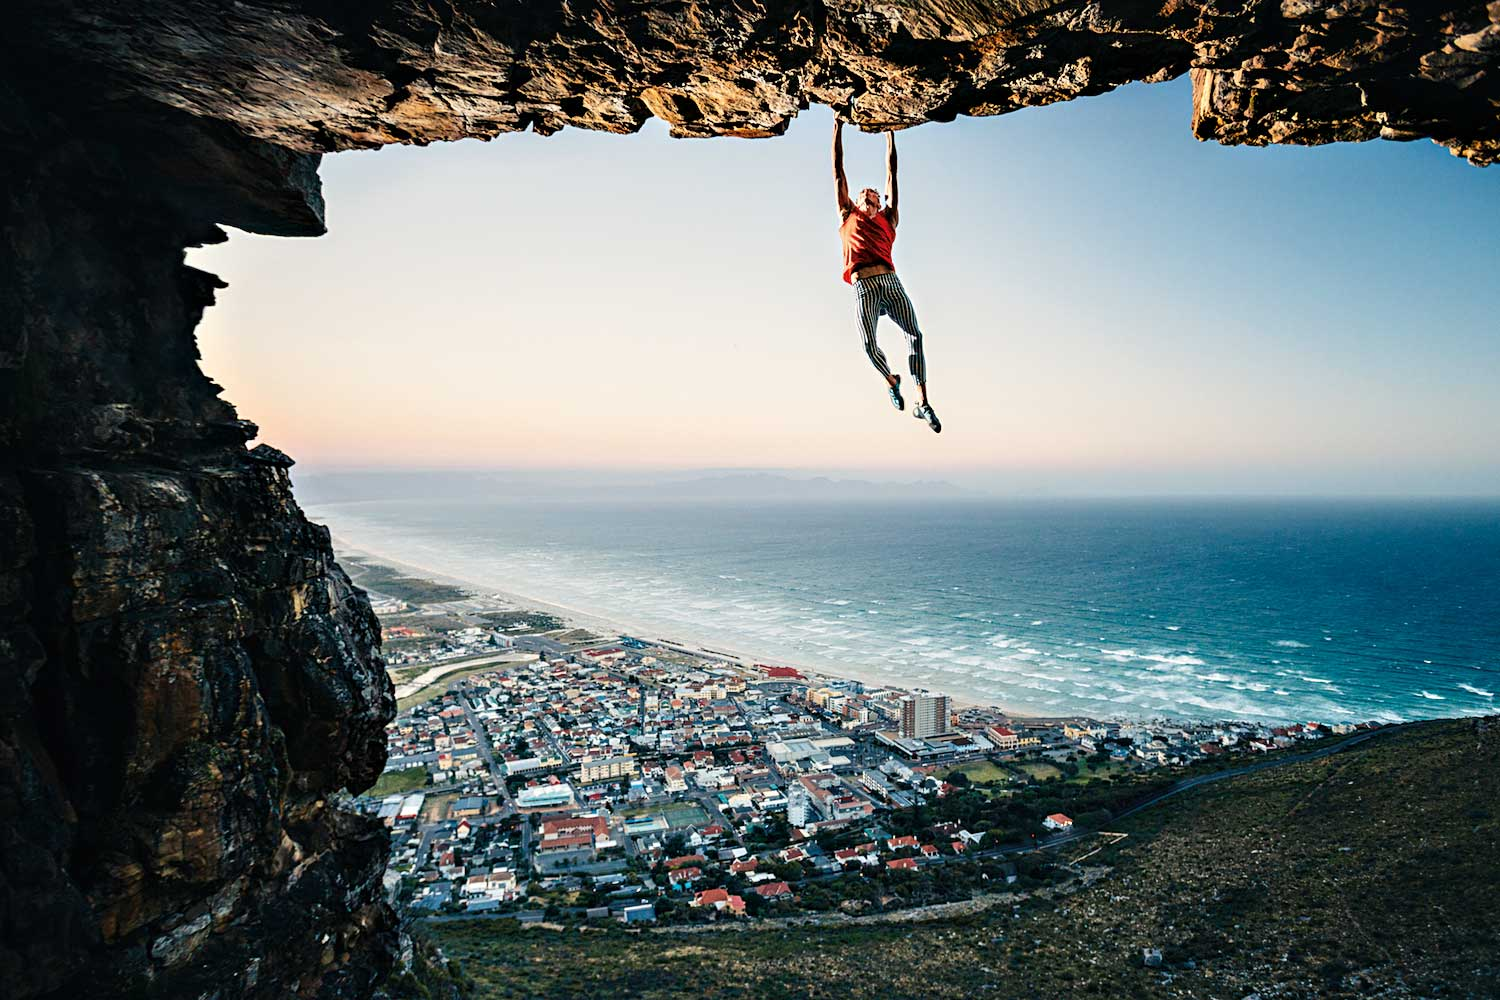 Matt Bush is one of the world's most accomplished free-solo climbers